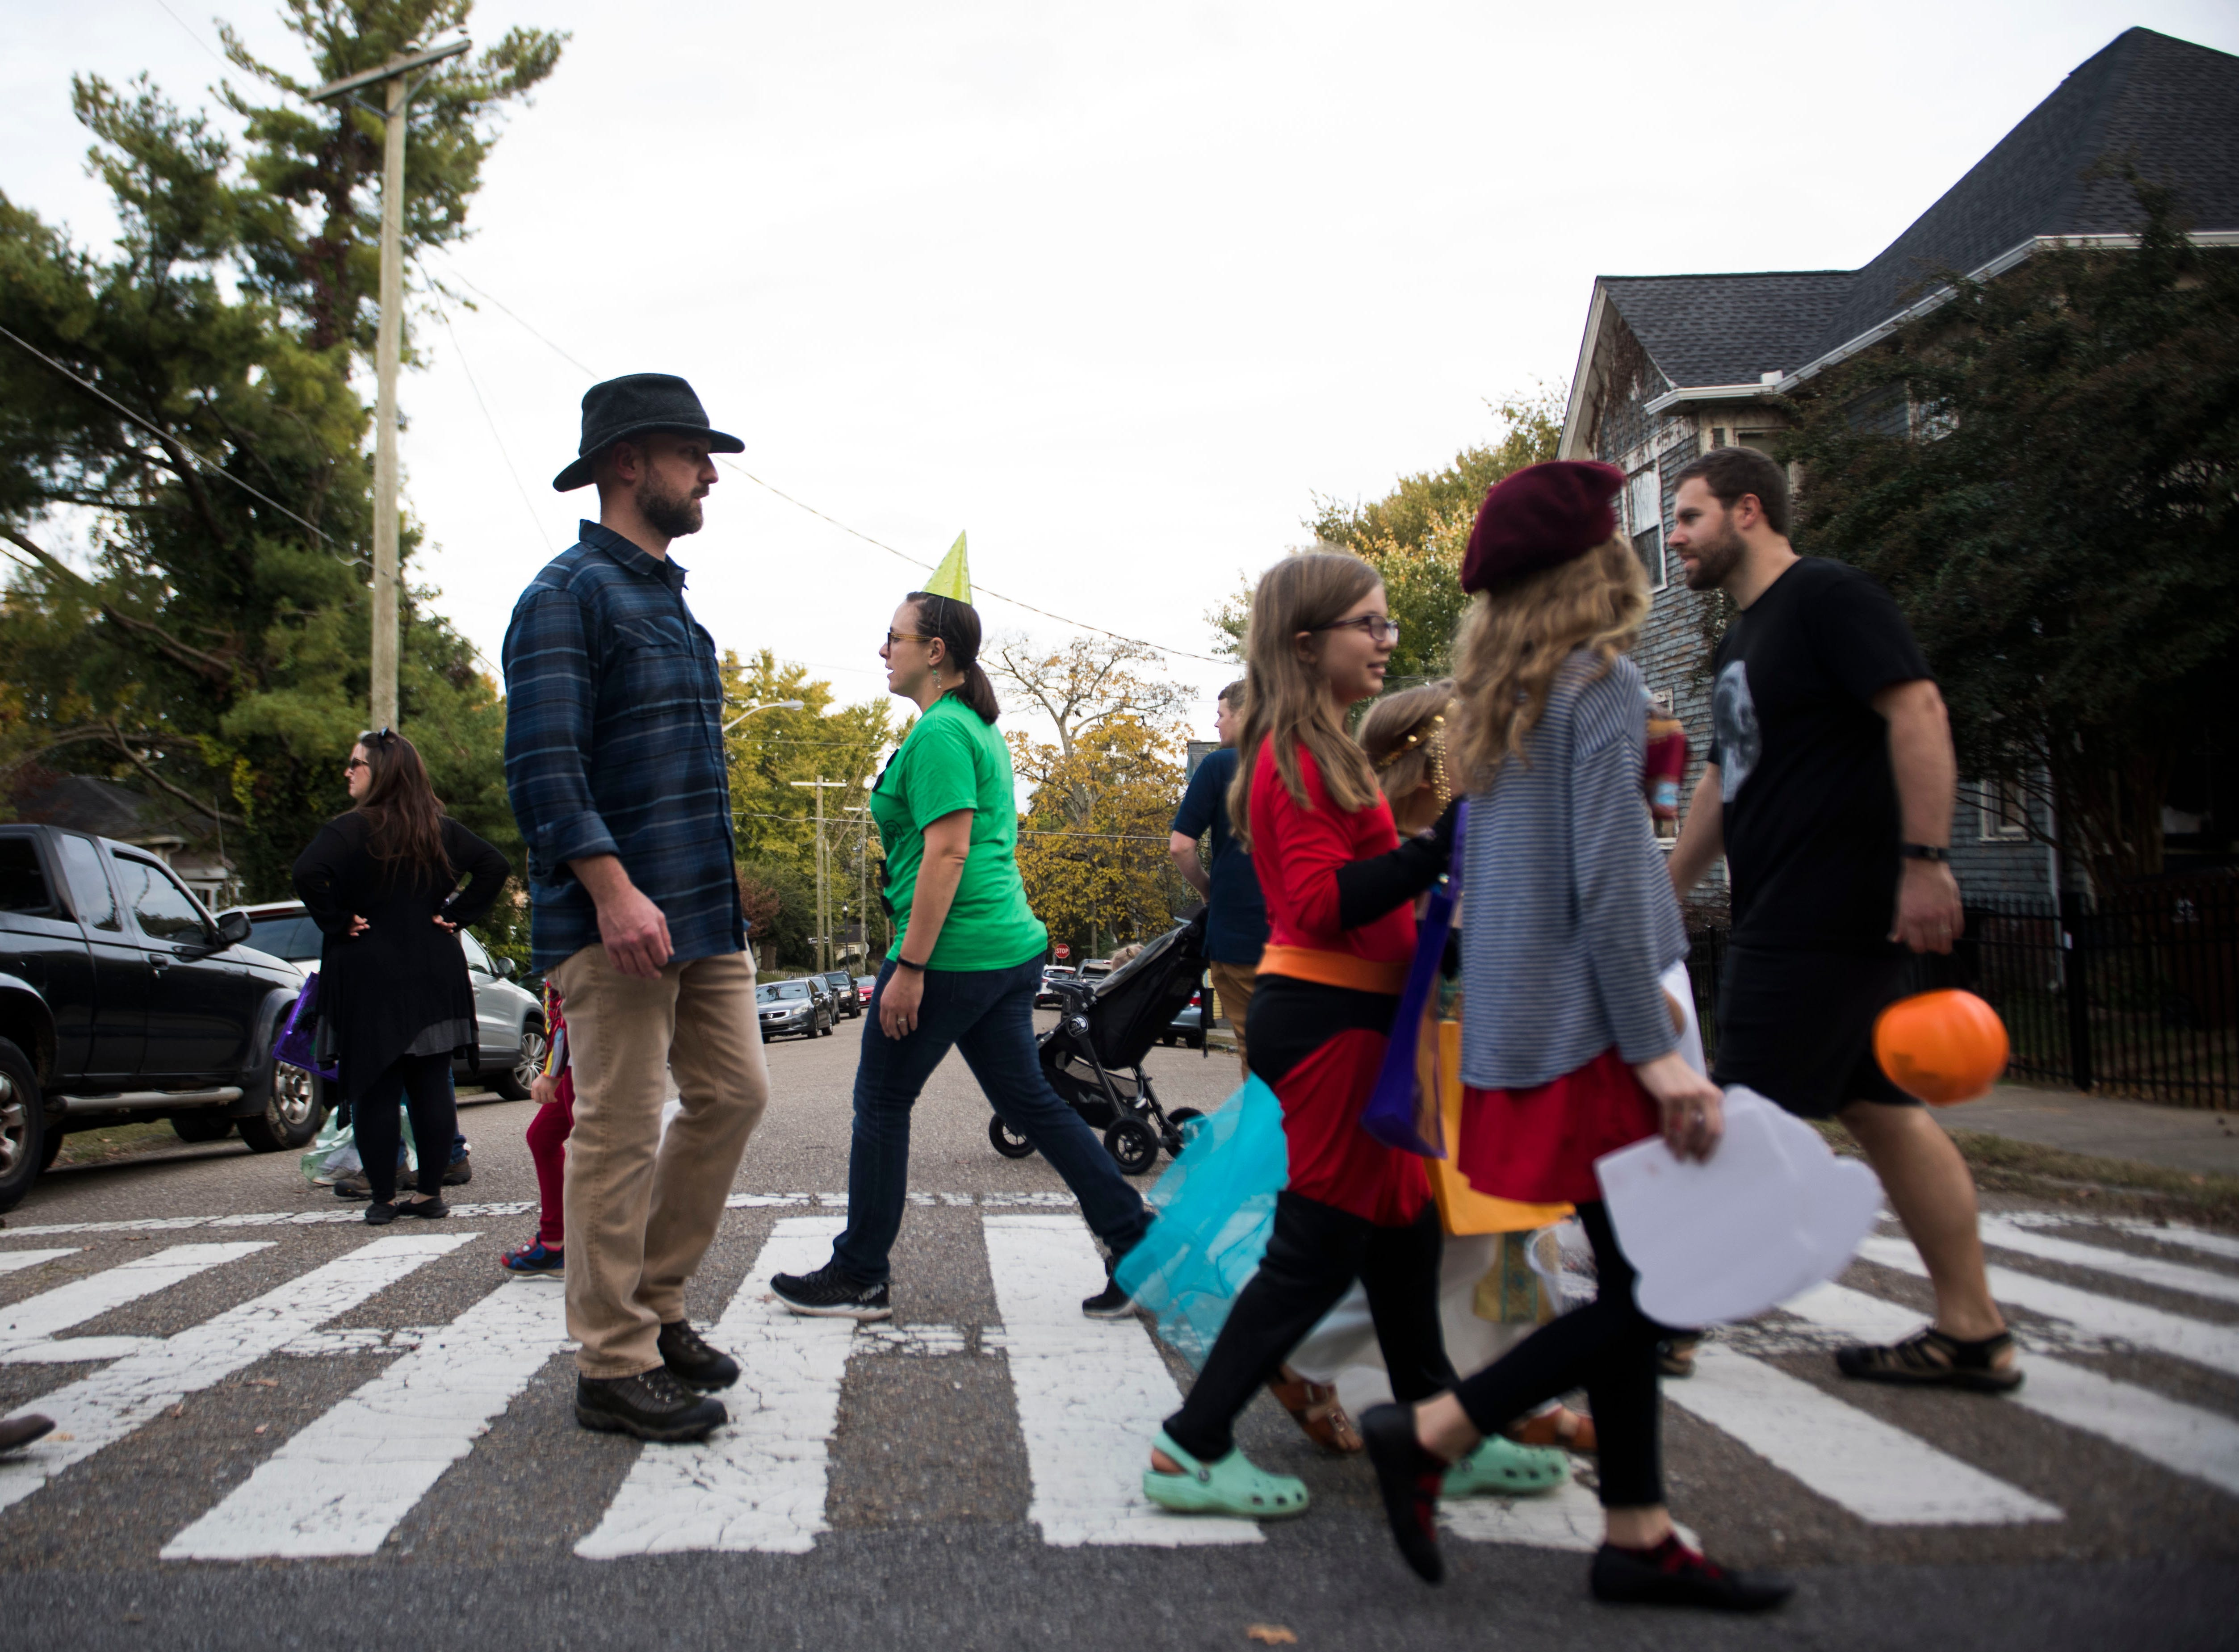 Trick-or-treaters cross the street in the Fourth and Gill neighborhood in Knoxville, Wed. Oct. 31, 2018.